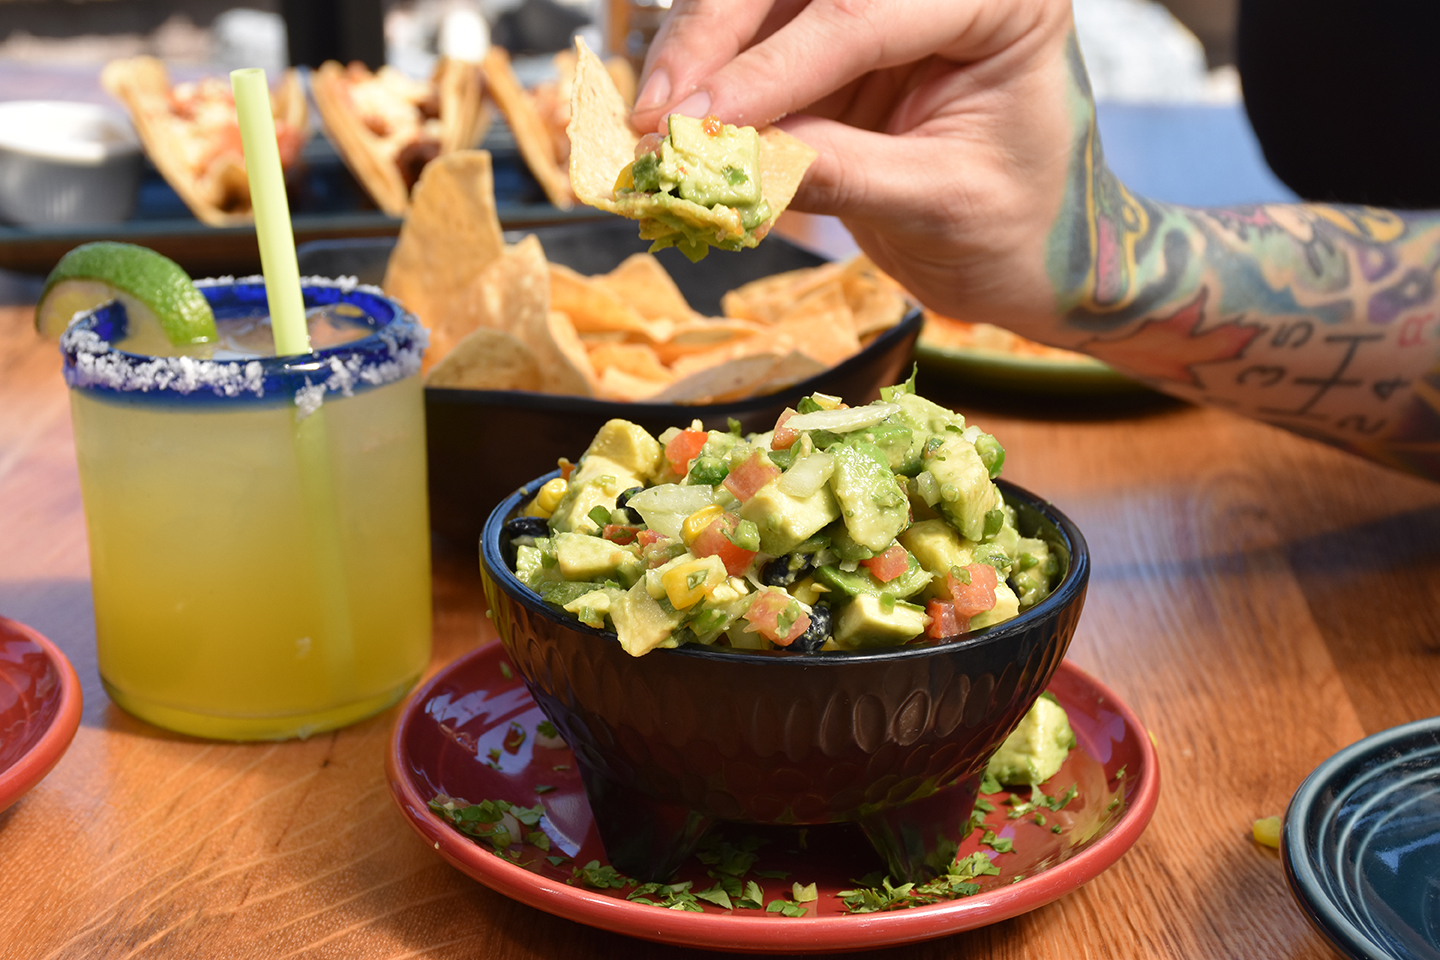 The best Guacamole in Kenosha